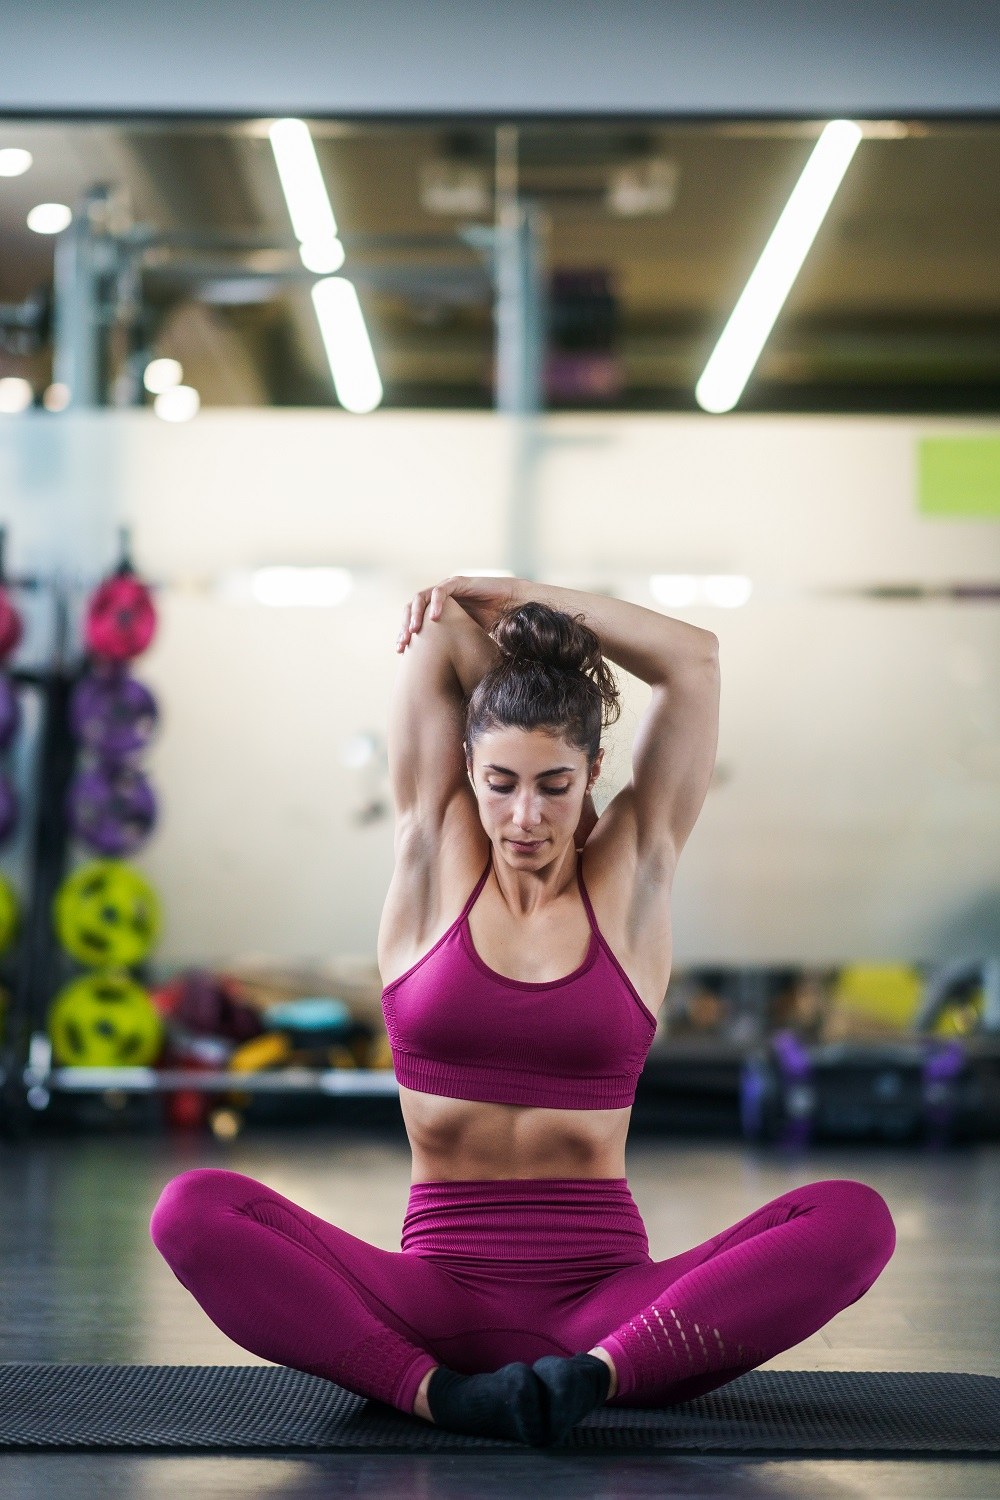 Young woman Doing Stretching Exercises on a yoga mat at the Gym